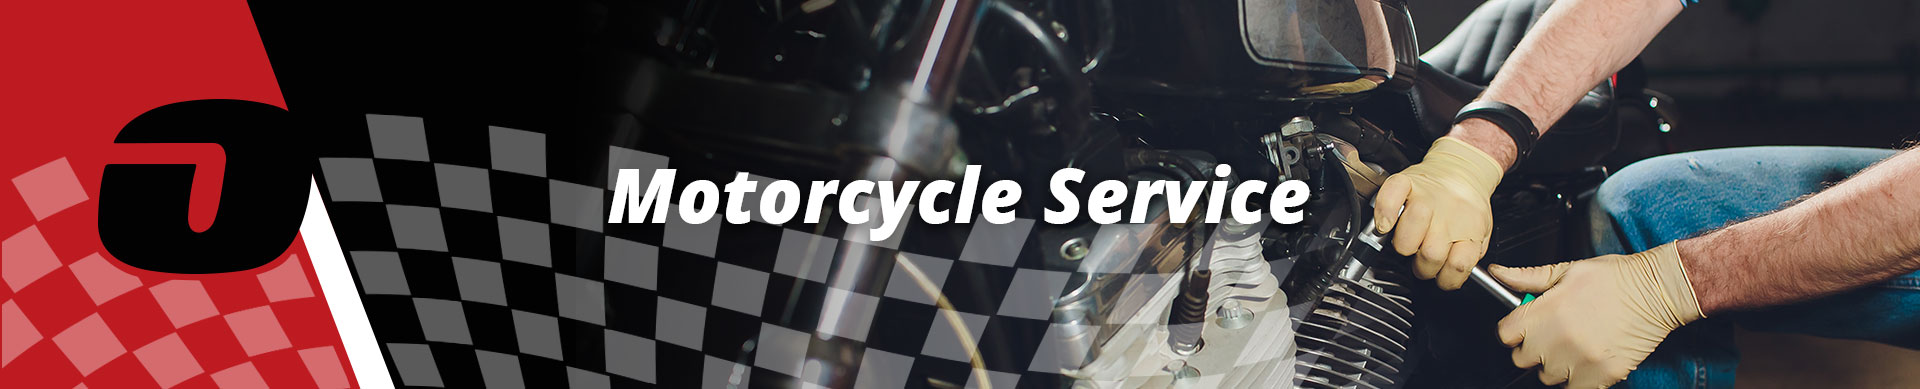 motorcycle-mechanic-service-surrey-bike